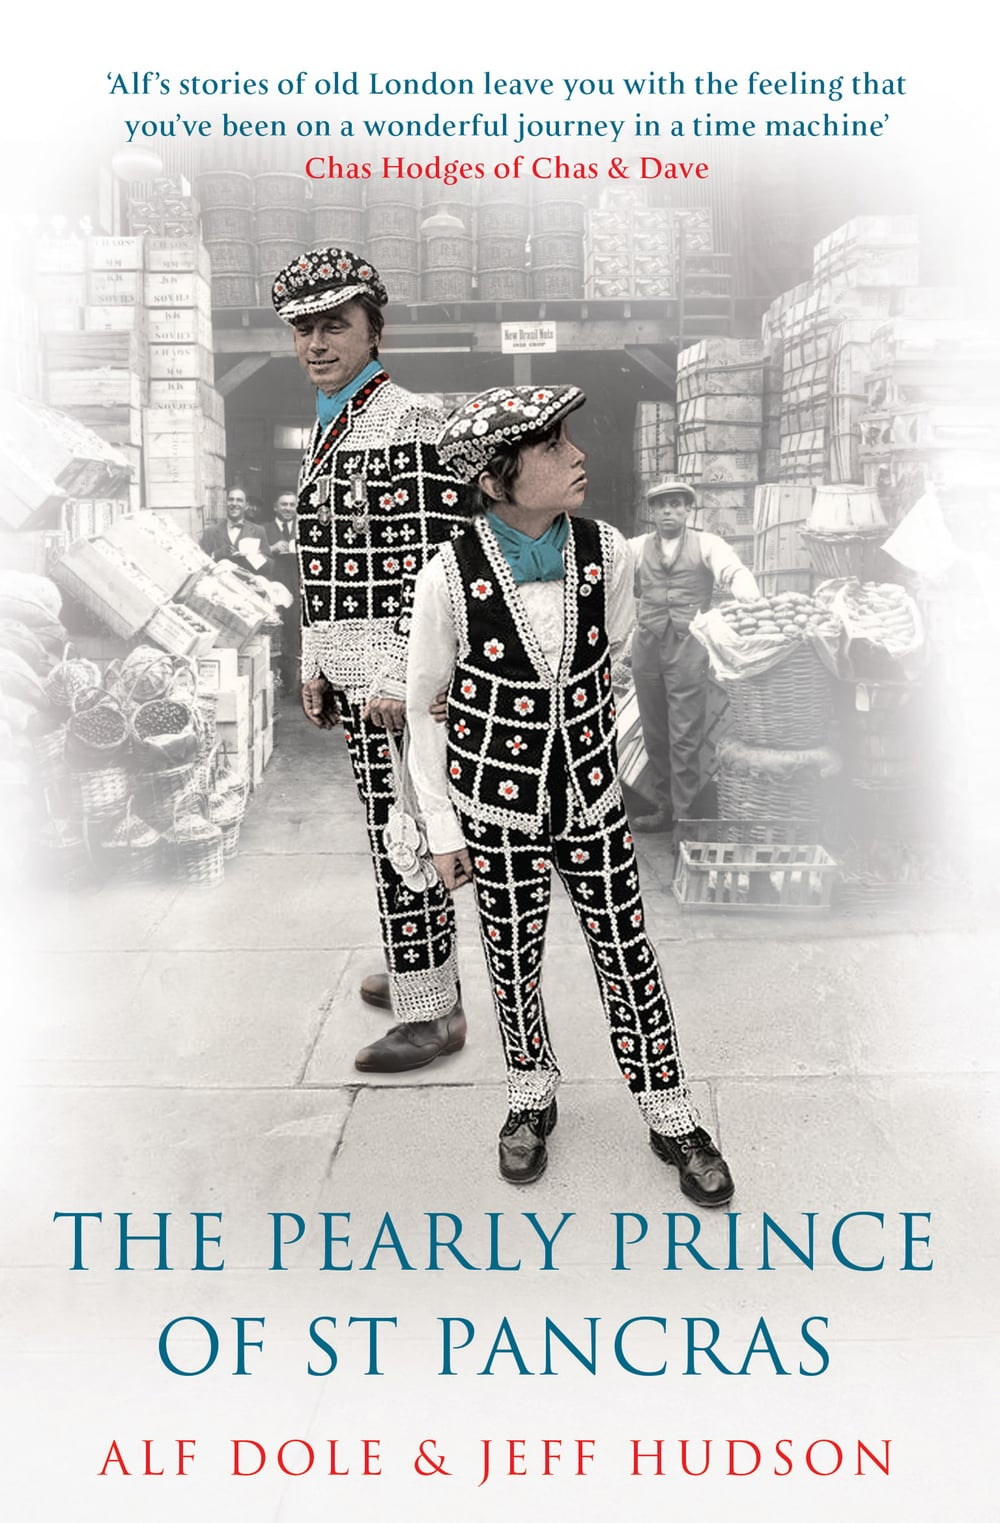 Book about Alf Dole The Pearly Prince of St Pancras